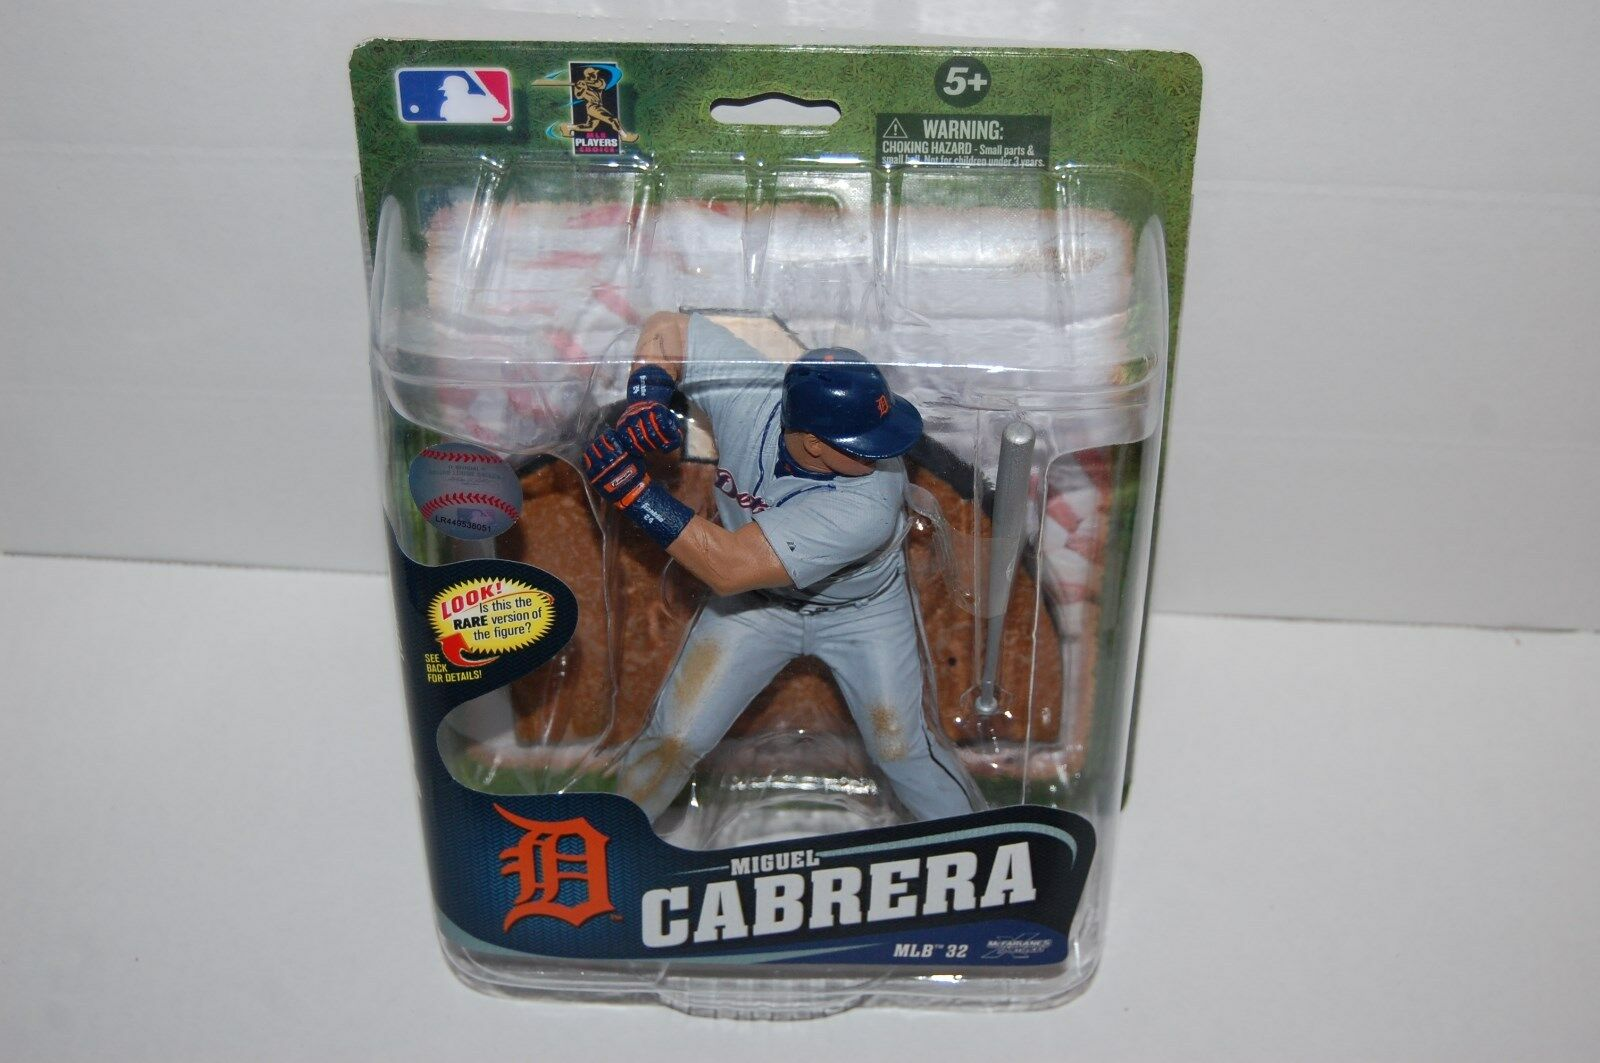 DETROIT TIGERS MIGUEL CABRERA  MLB SERIES 32 BRONZE CL 0048 1500 AF